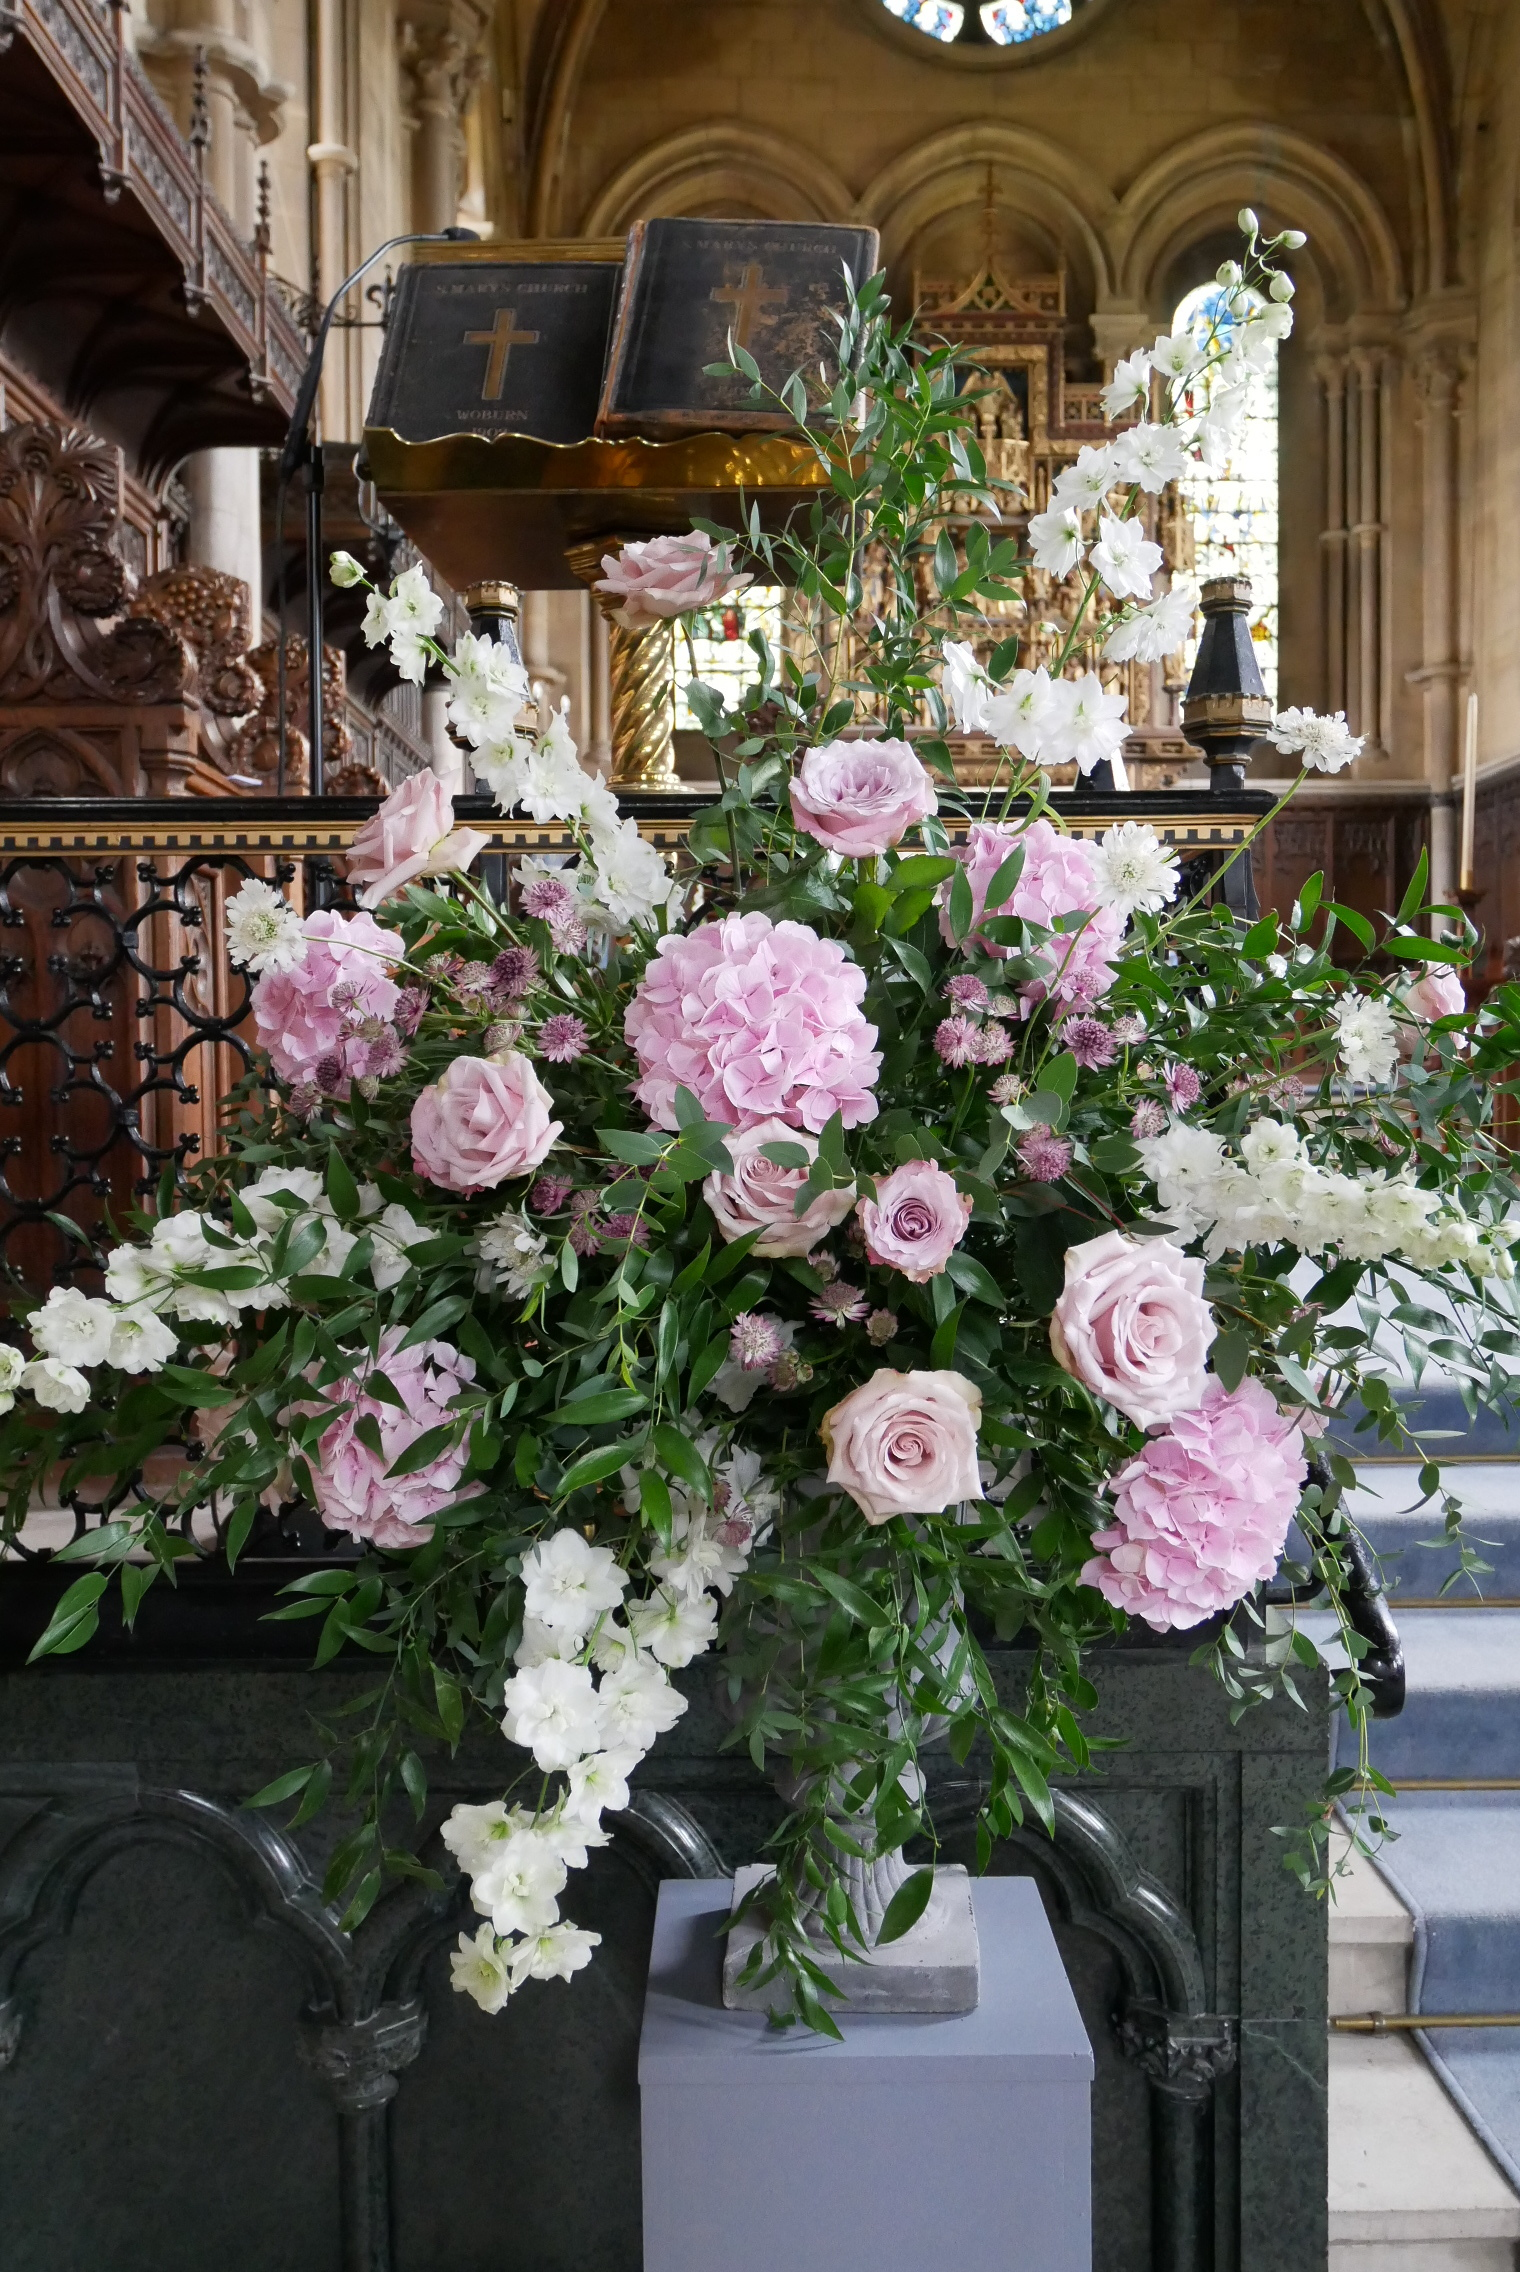 Blush church pedestal display at St Mary's church, Woburn